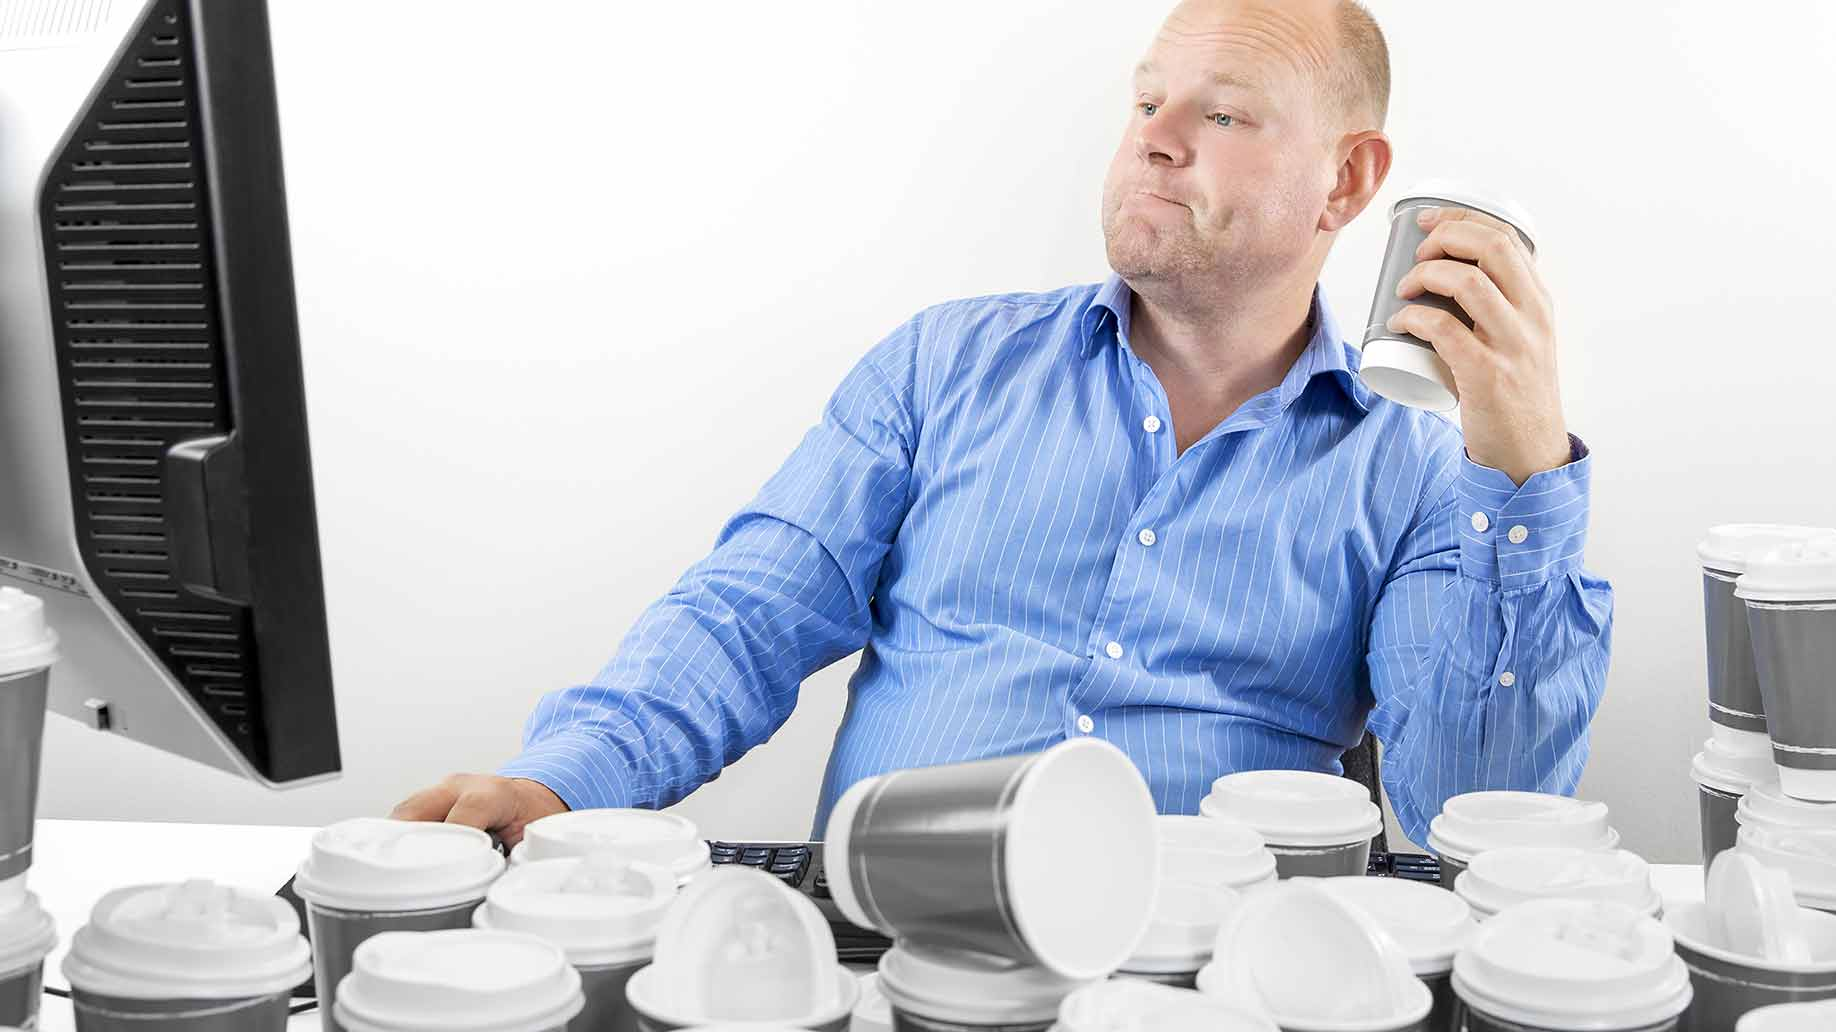 coffee natural benefits too much cups drinks caffeine